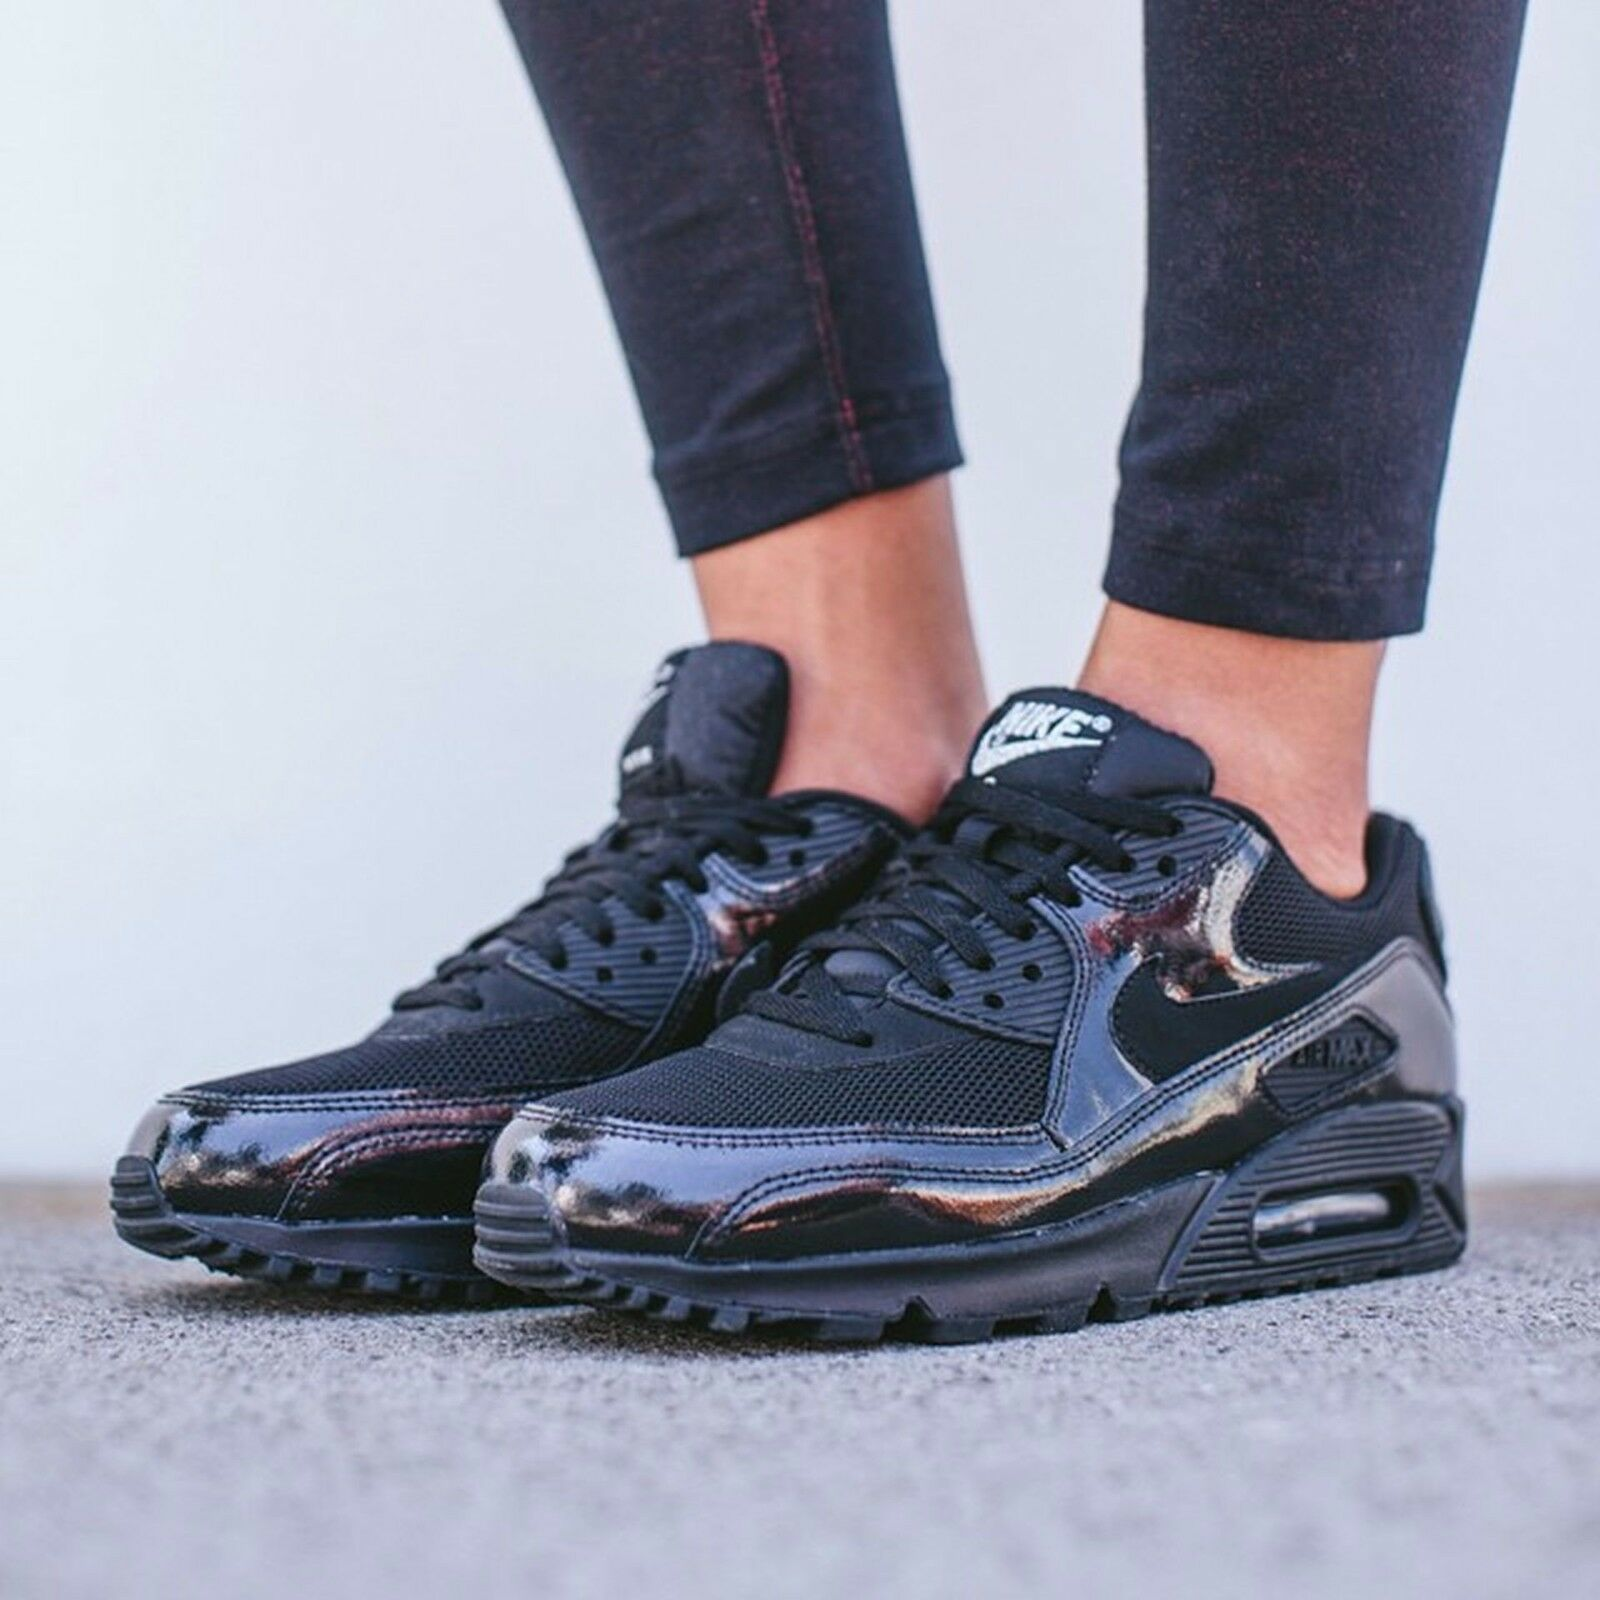 Nike Air Max 90 PREM Wmn Shoes Size 8 443817-002 Black/Black